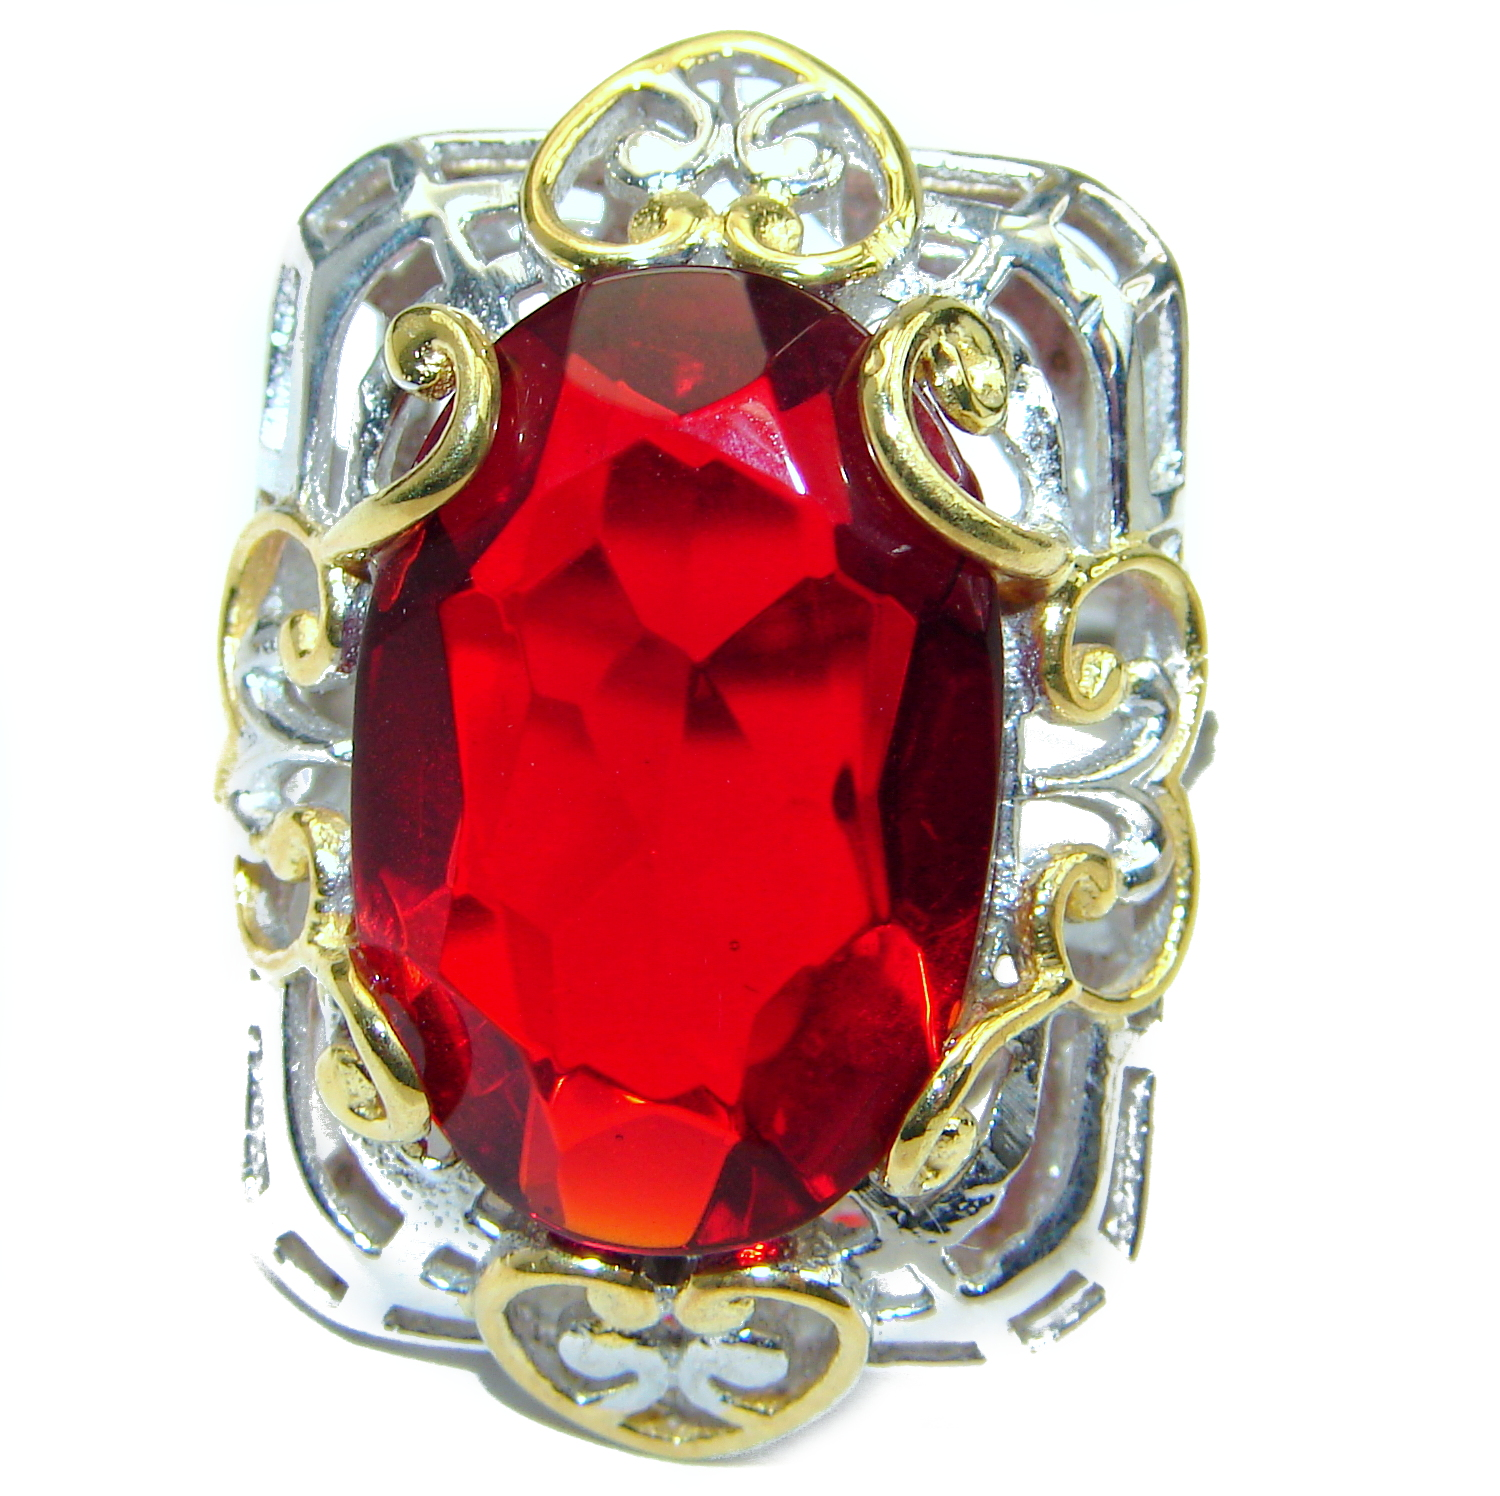 Ruby color Quartz Topaz two tones .925 Sterling Silver handcrafted Ring s. 7 1/2